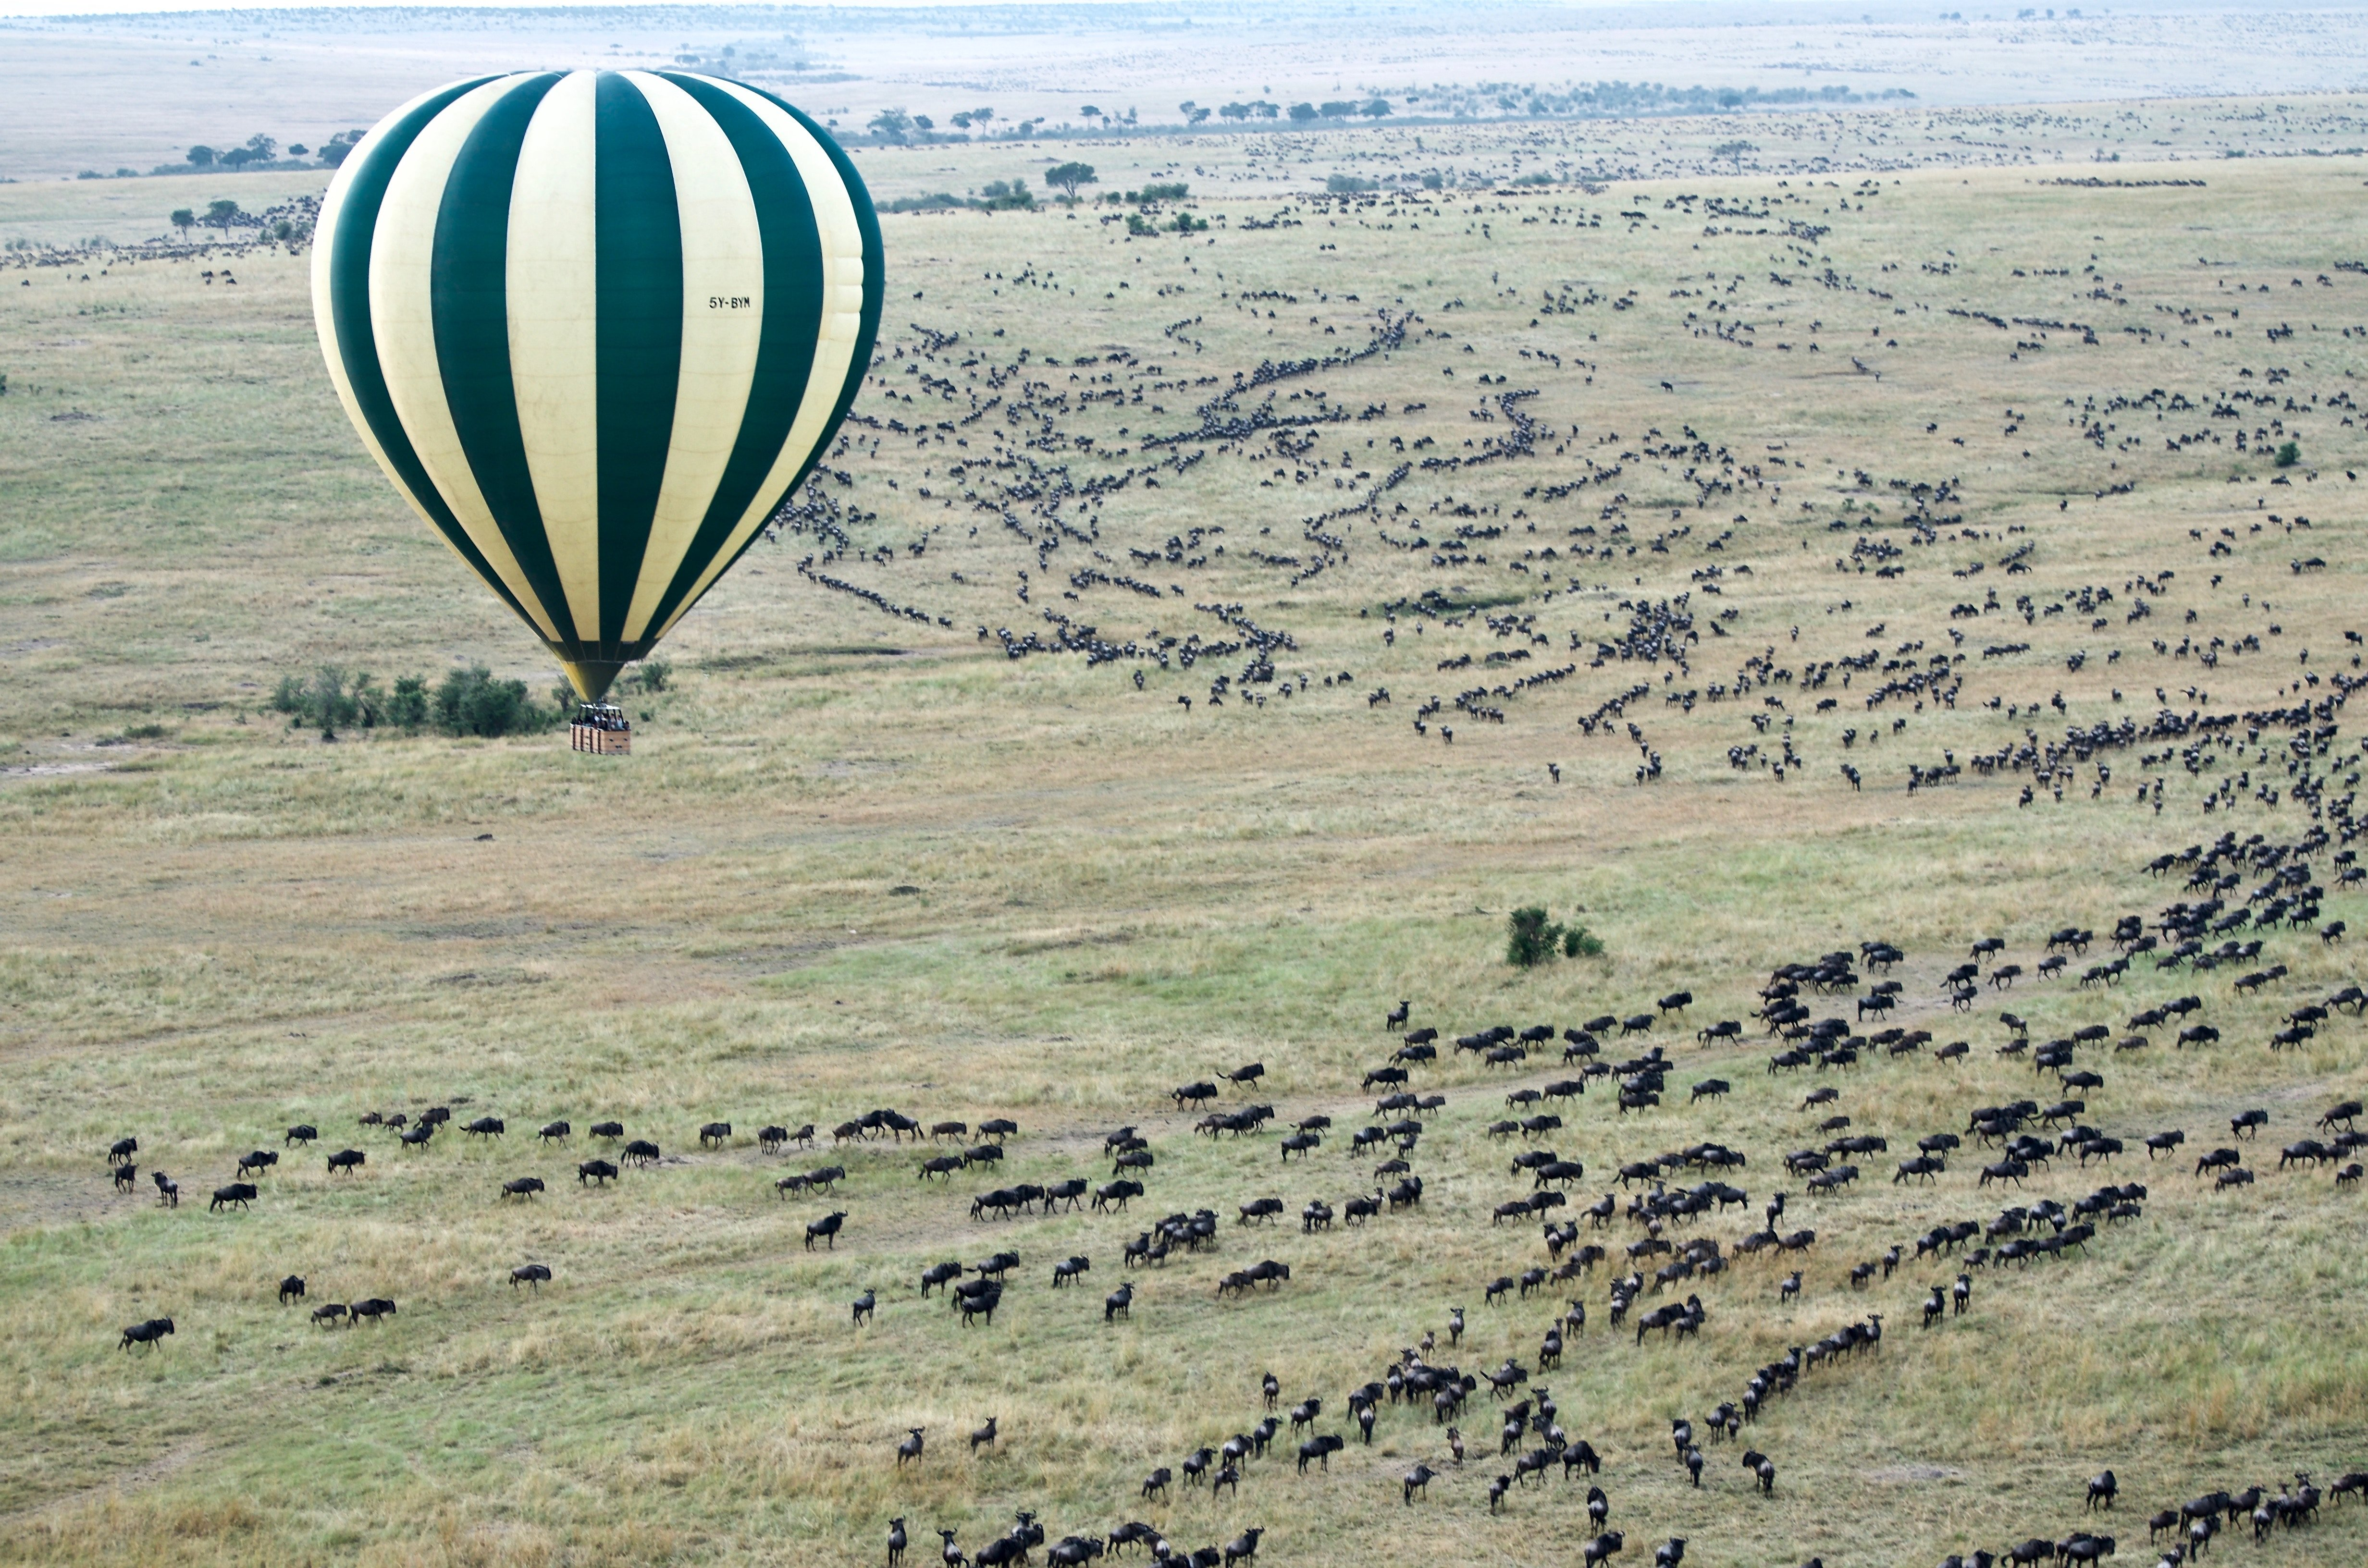 serengeti_balloon_safari.jpg - description